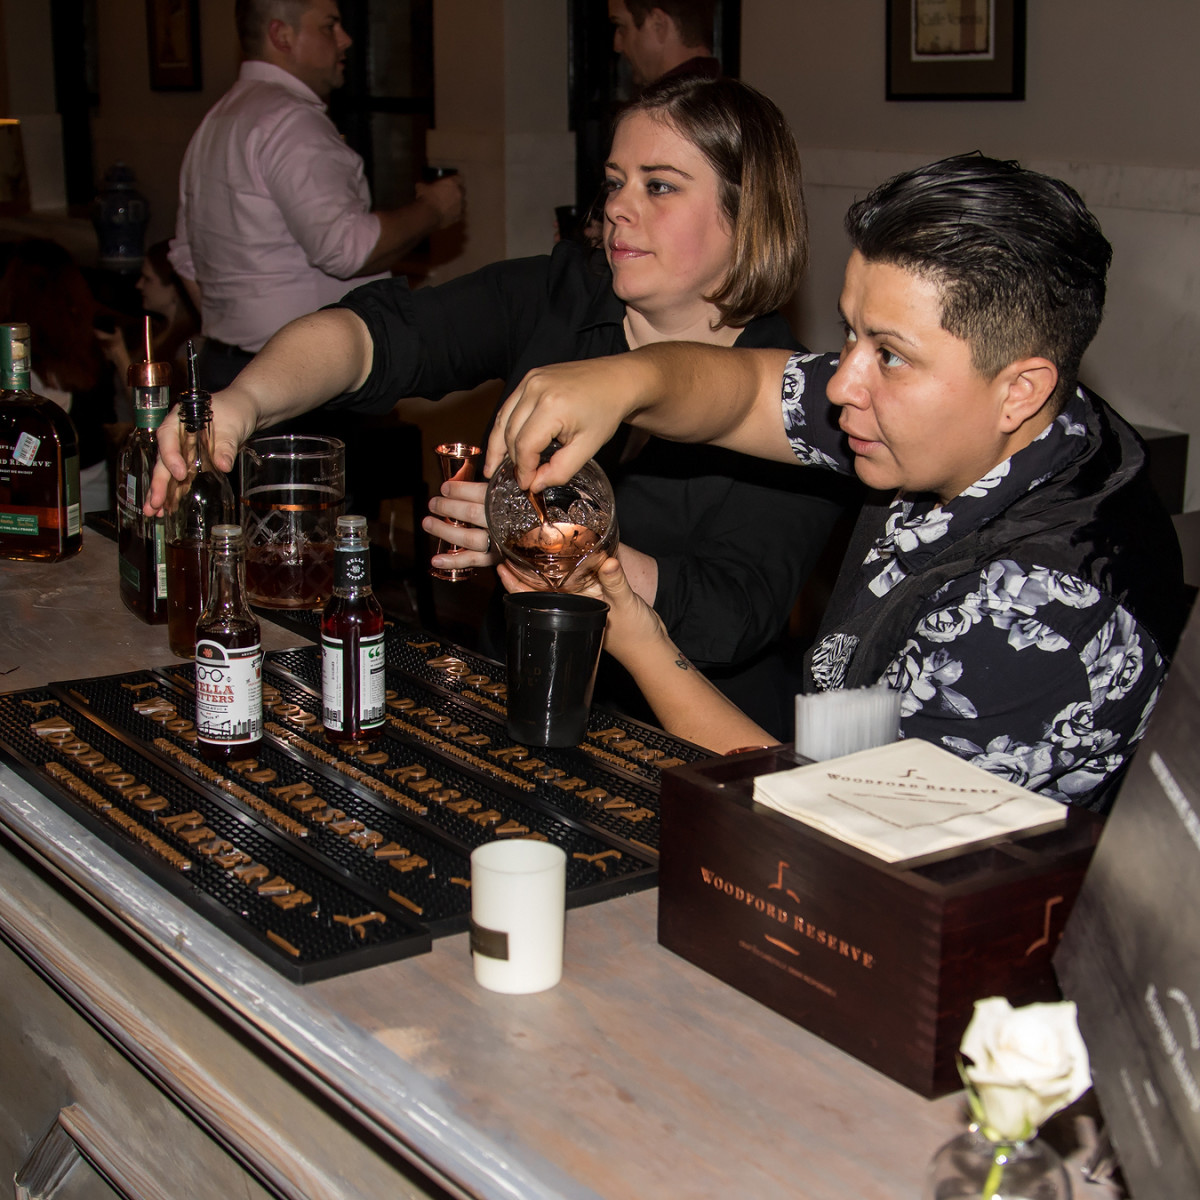 Fernanda Rossono, High & Tight bartender